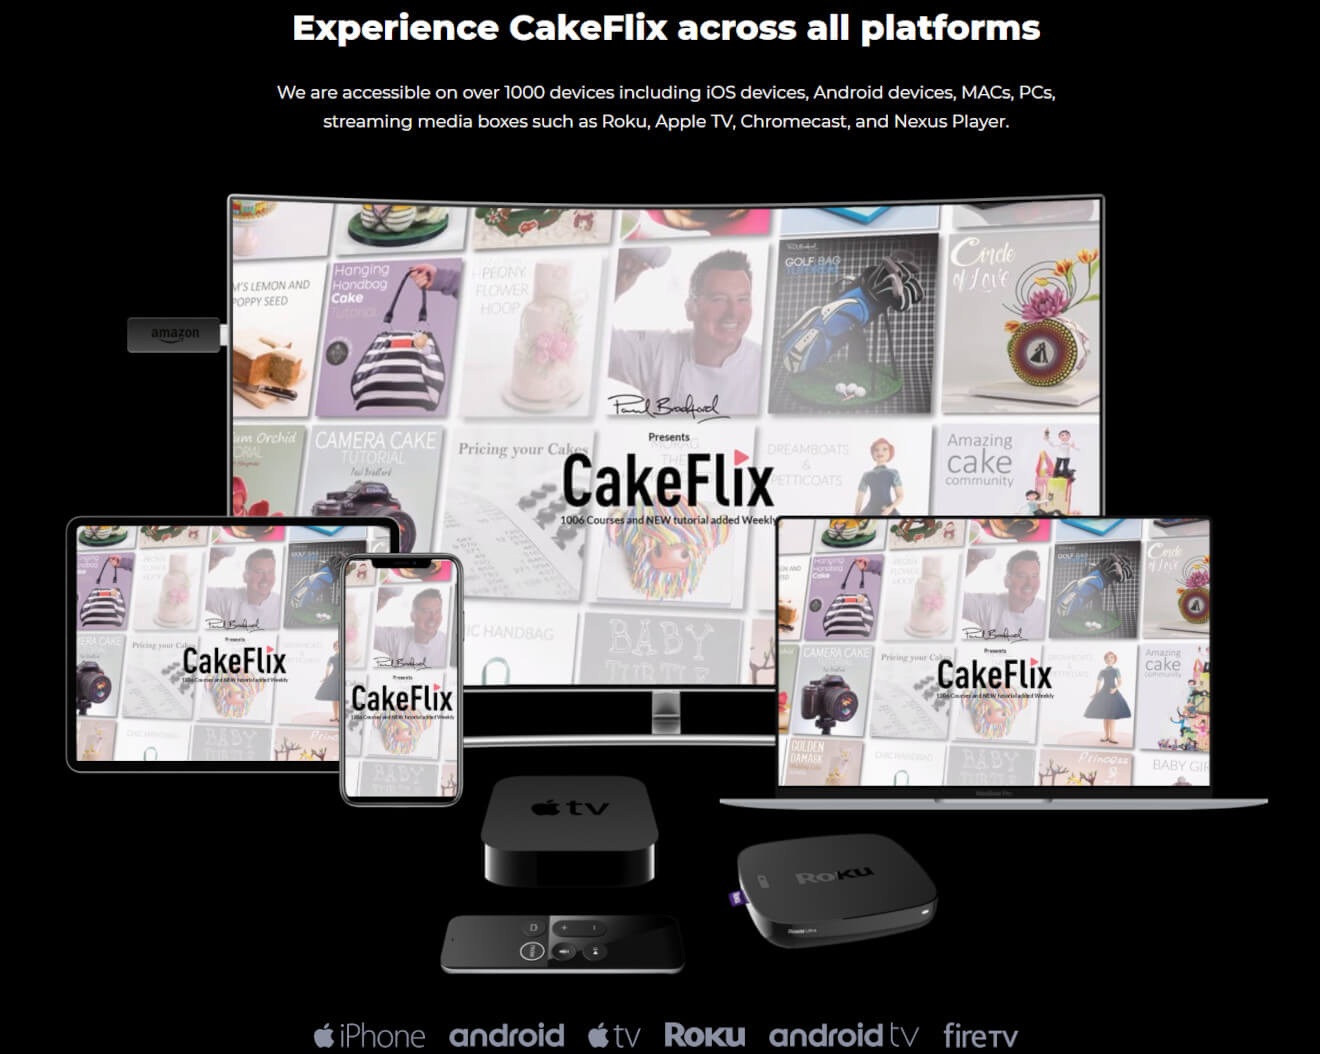 cakeflix video streaming service